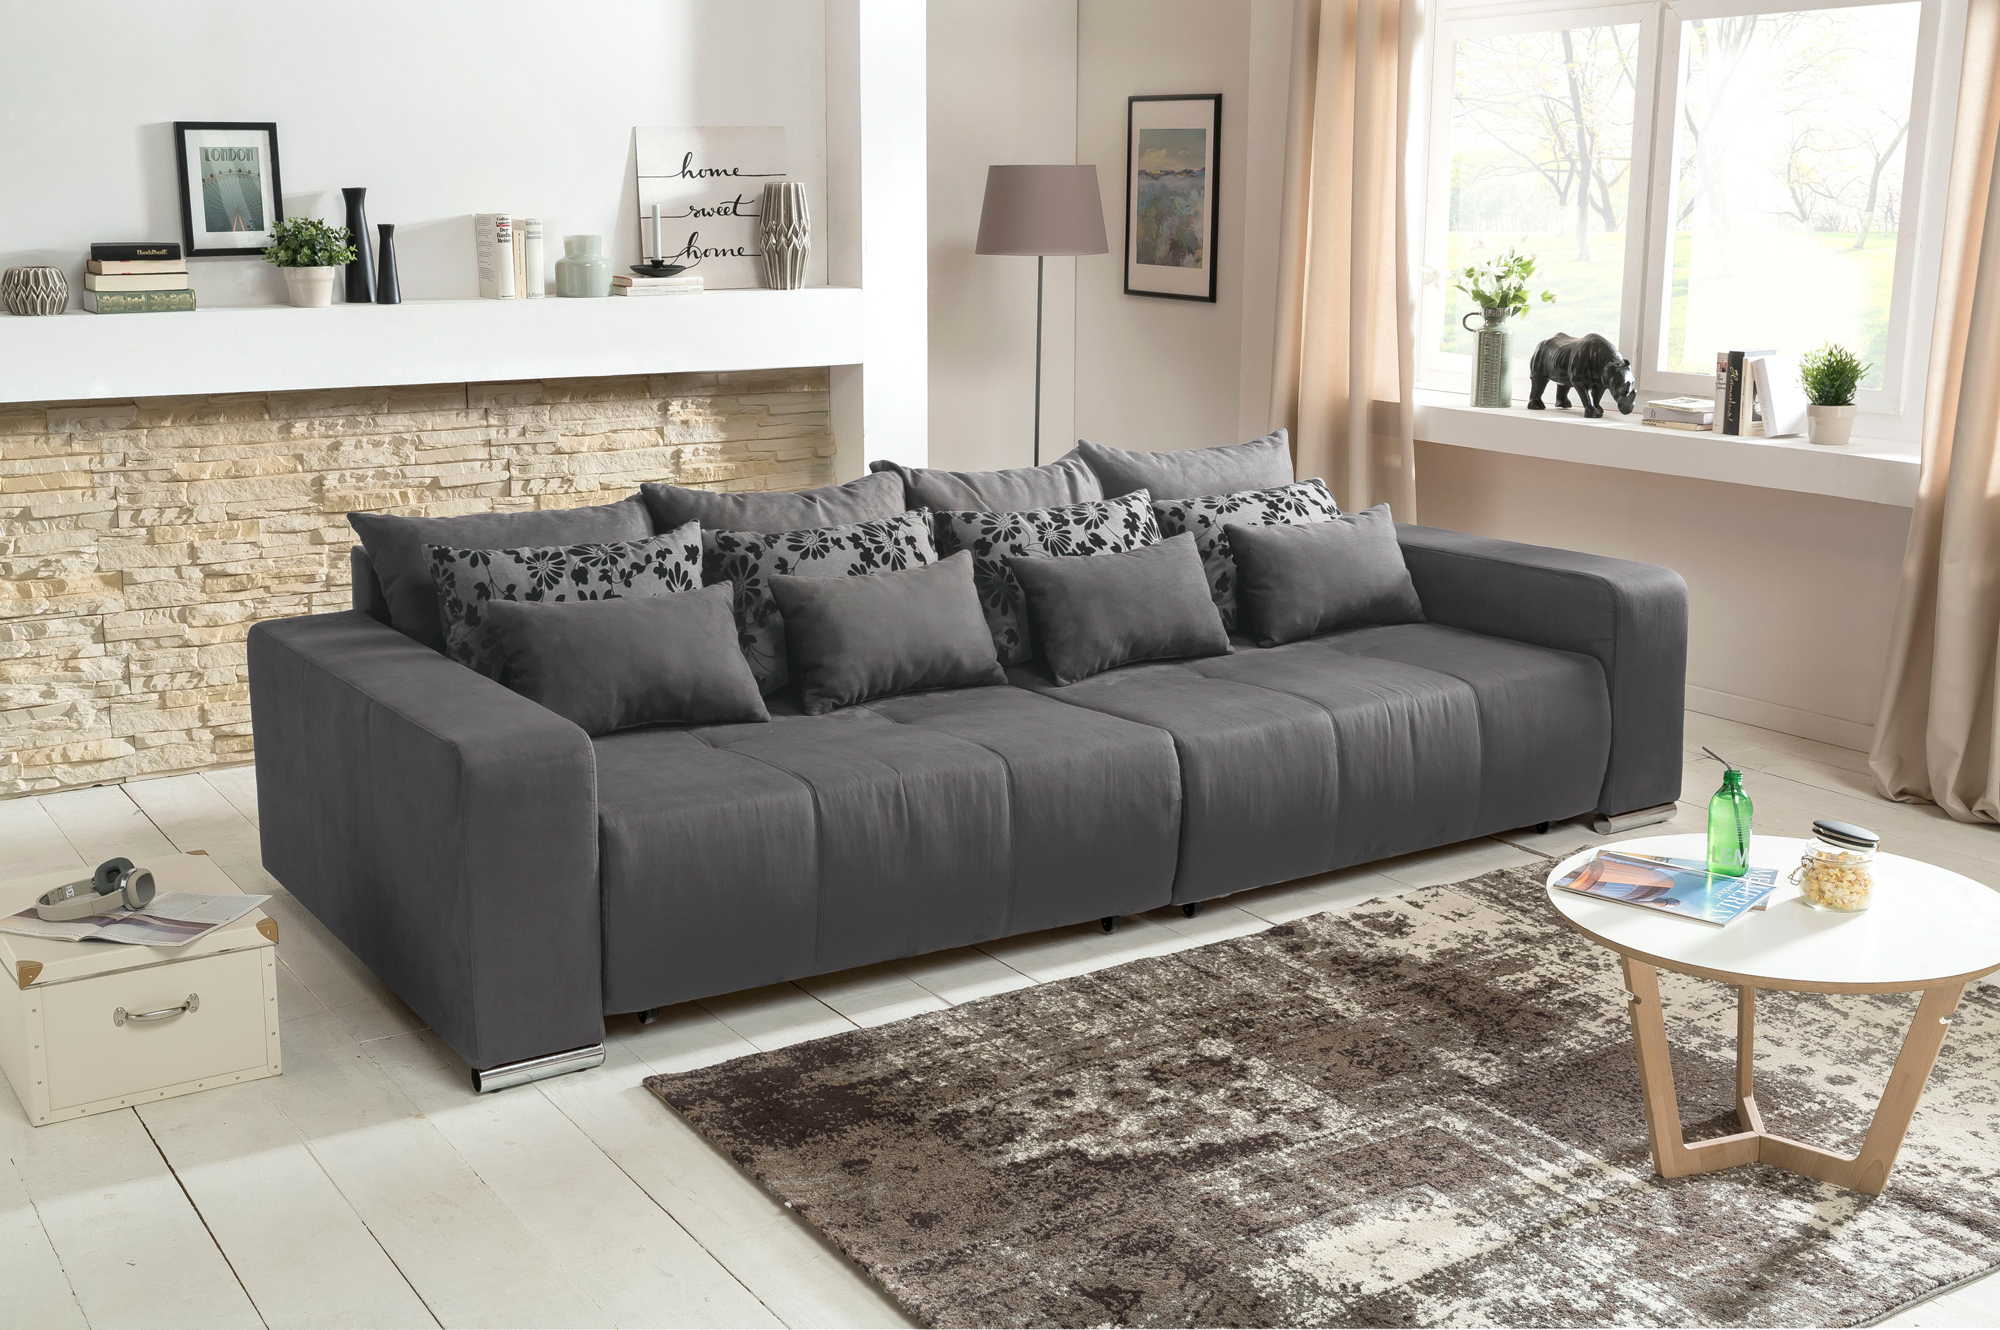 big sofa in grau mit schlaffunktion mega sofa kaufen bei lifestyle4living m belvertrieb gmbh. Black Bedroom Furniture Sets. Home Design Ideas